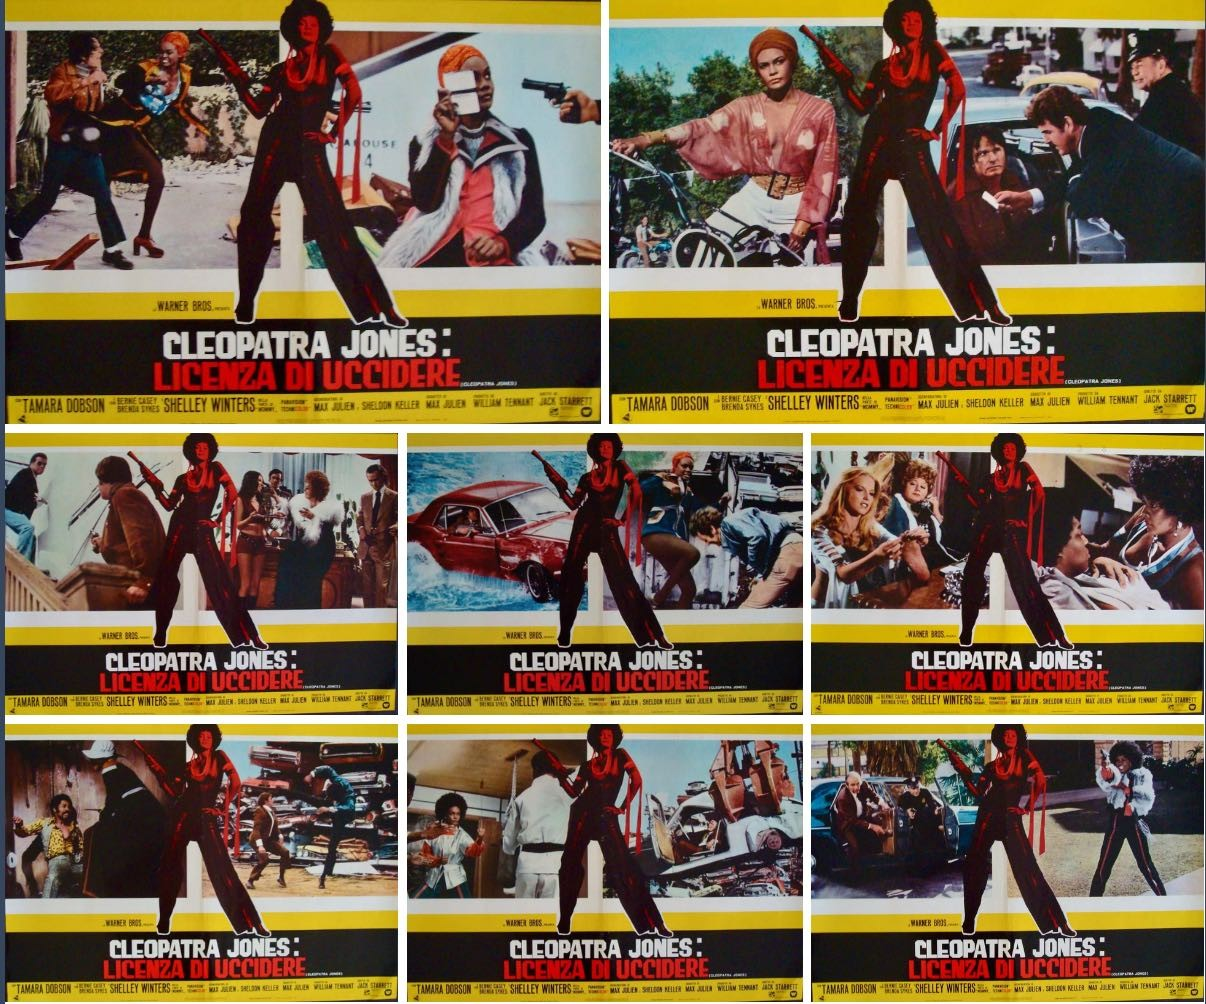 Cleopatra Jones Limited Runs